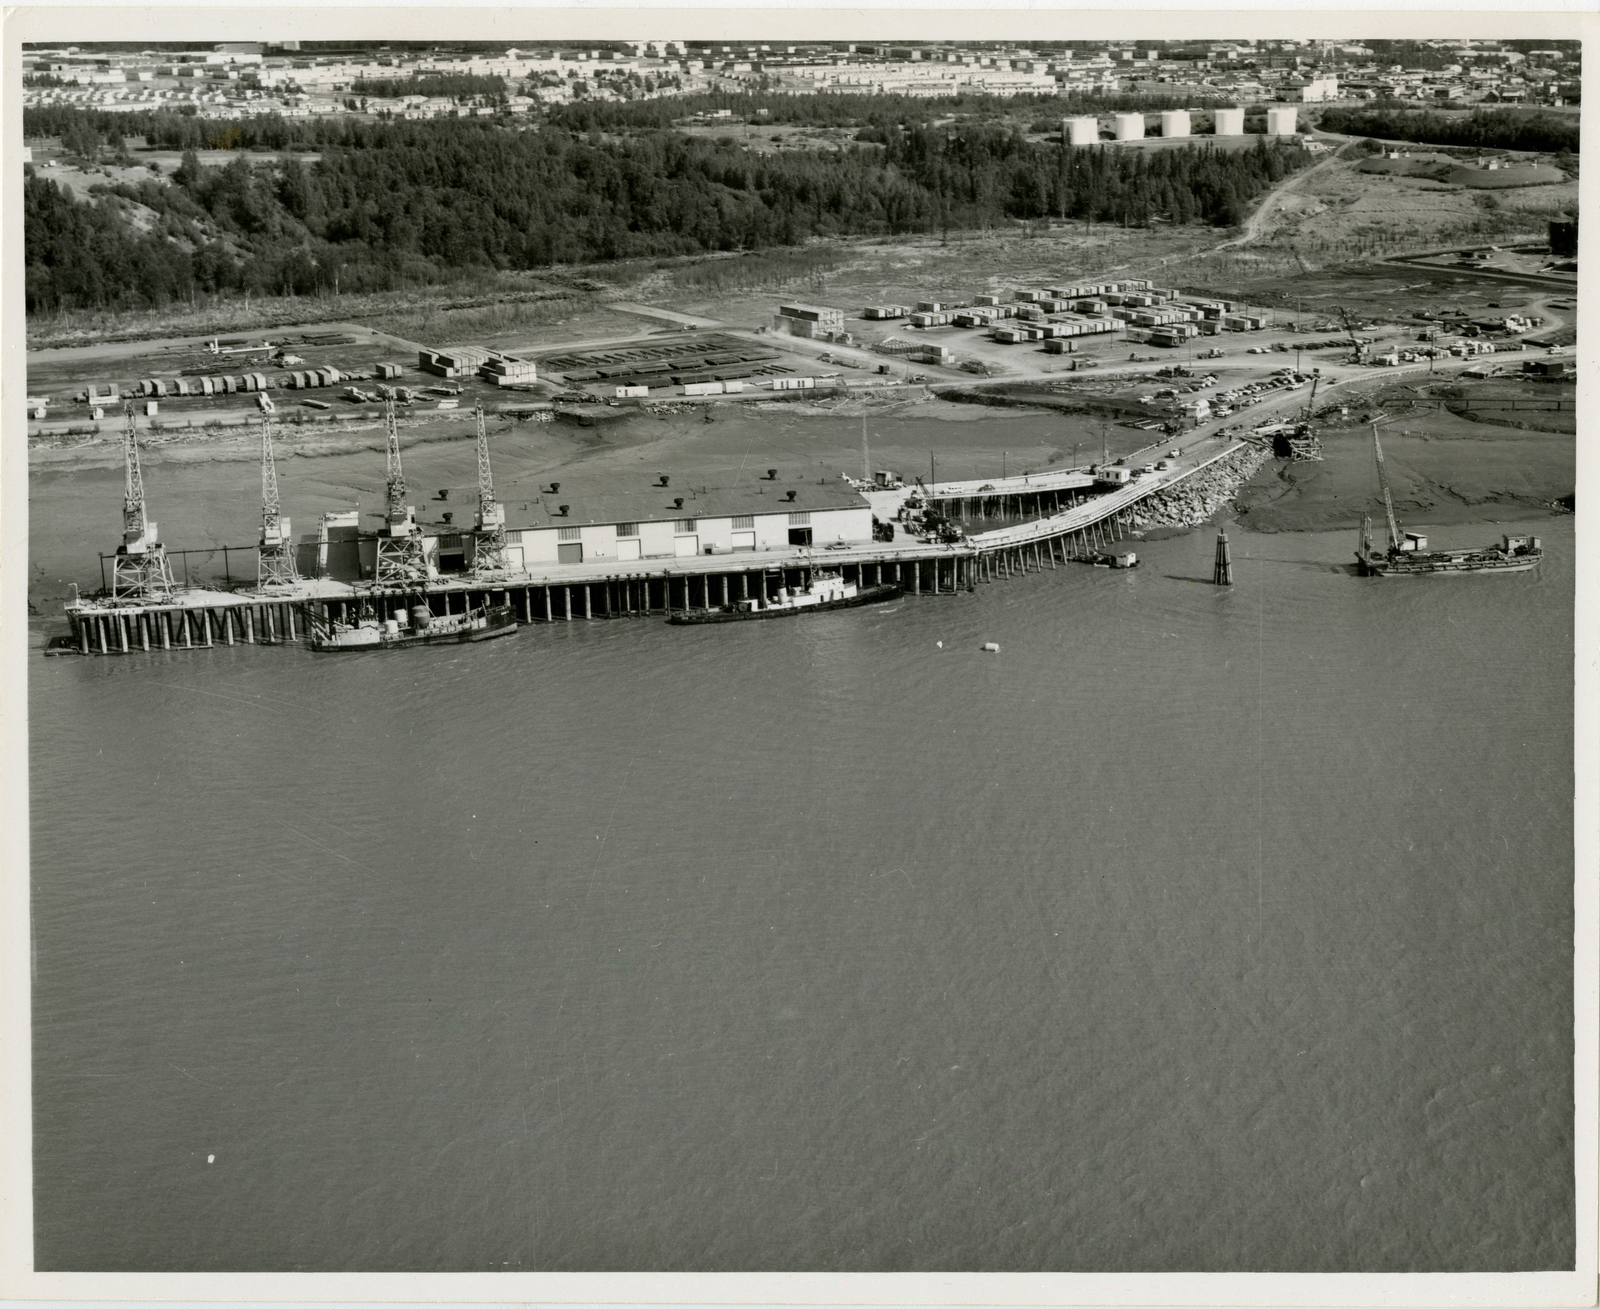 Contract 64-51 temporary port POL facilities, contractor- Gillbrough Structures, 11 June 1964, photo by Tice, complete timber dolphin on the left, barge mounted pile driver constructing breasting platform, mobile pile driver constructing trestle for pipeline looking east. Background, contract 64-27 dry cargoes storage areas, contractor- Miller Brothers. 11 June 1964, photo by Tice, dry storage areas raised and extended